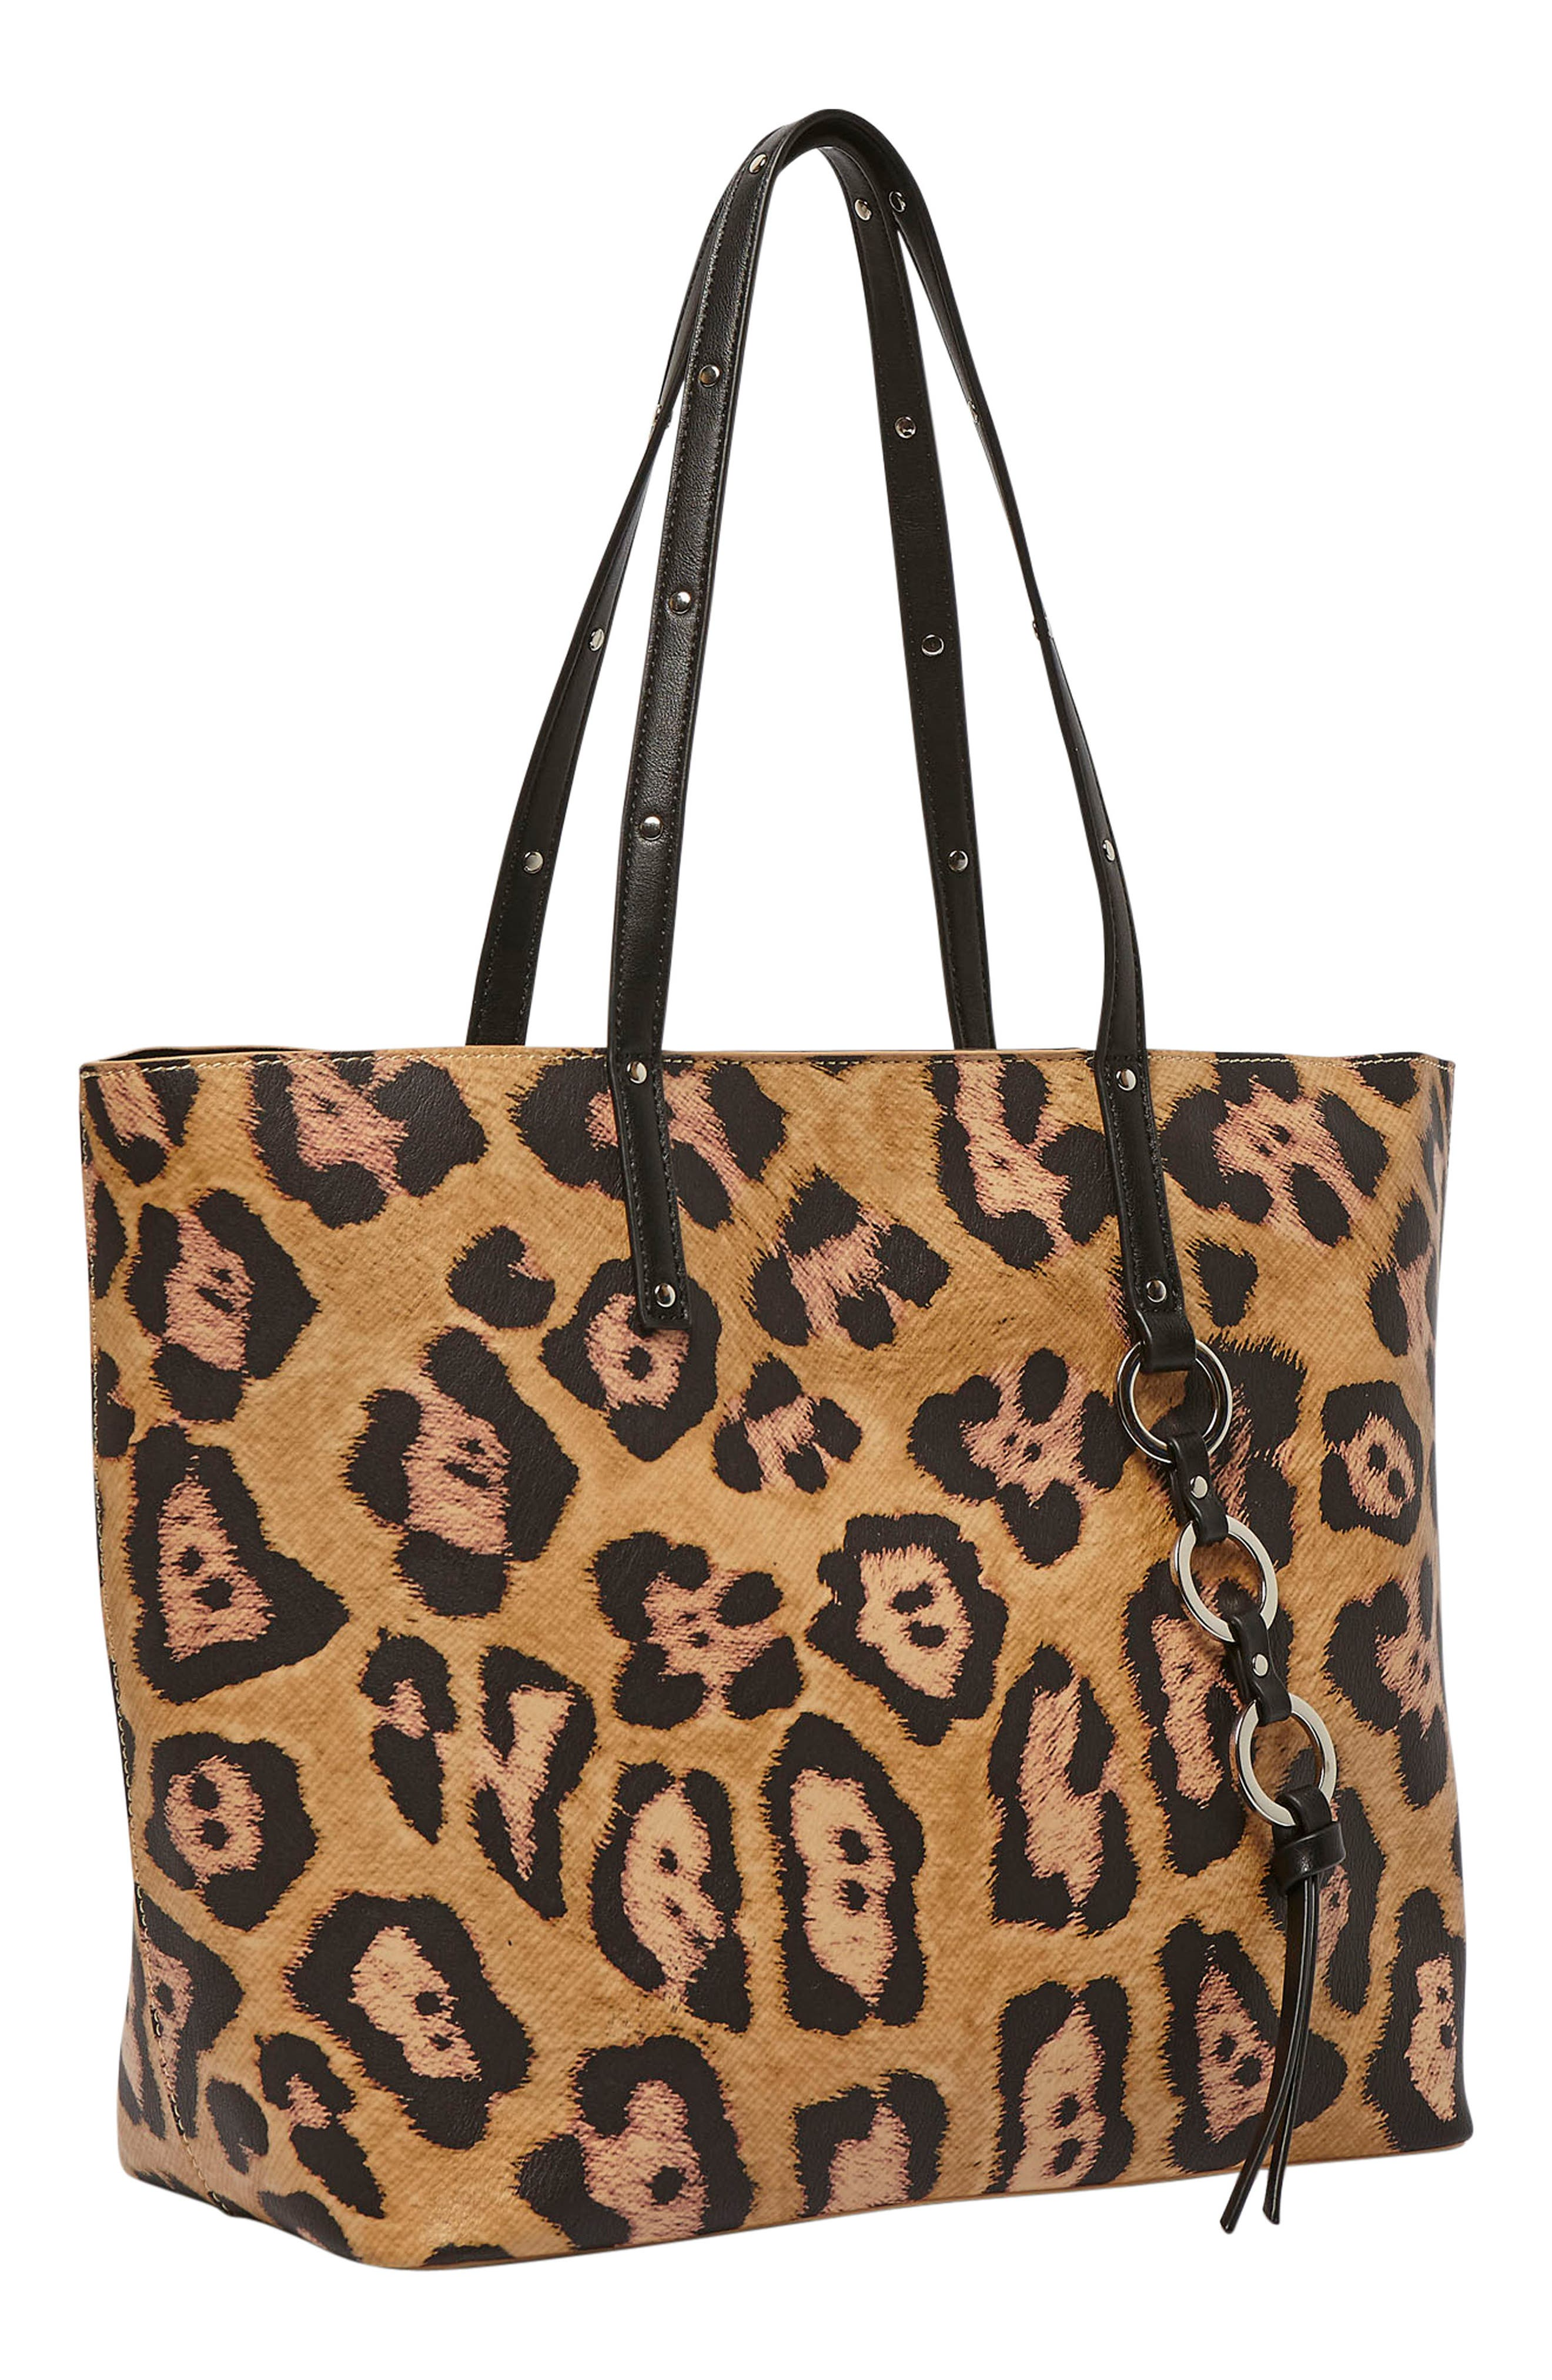 Wild Fire Vegan Leather Tote,                             Alternate thumbnail 12, color,